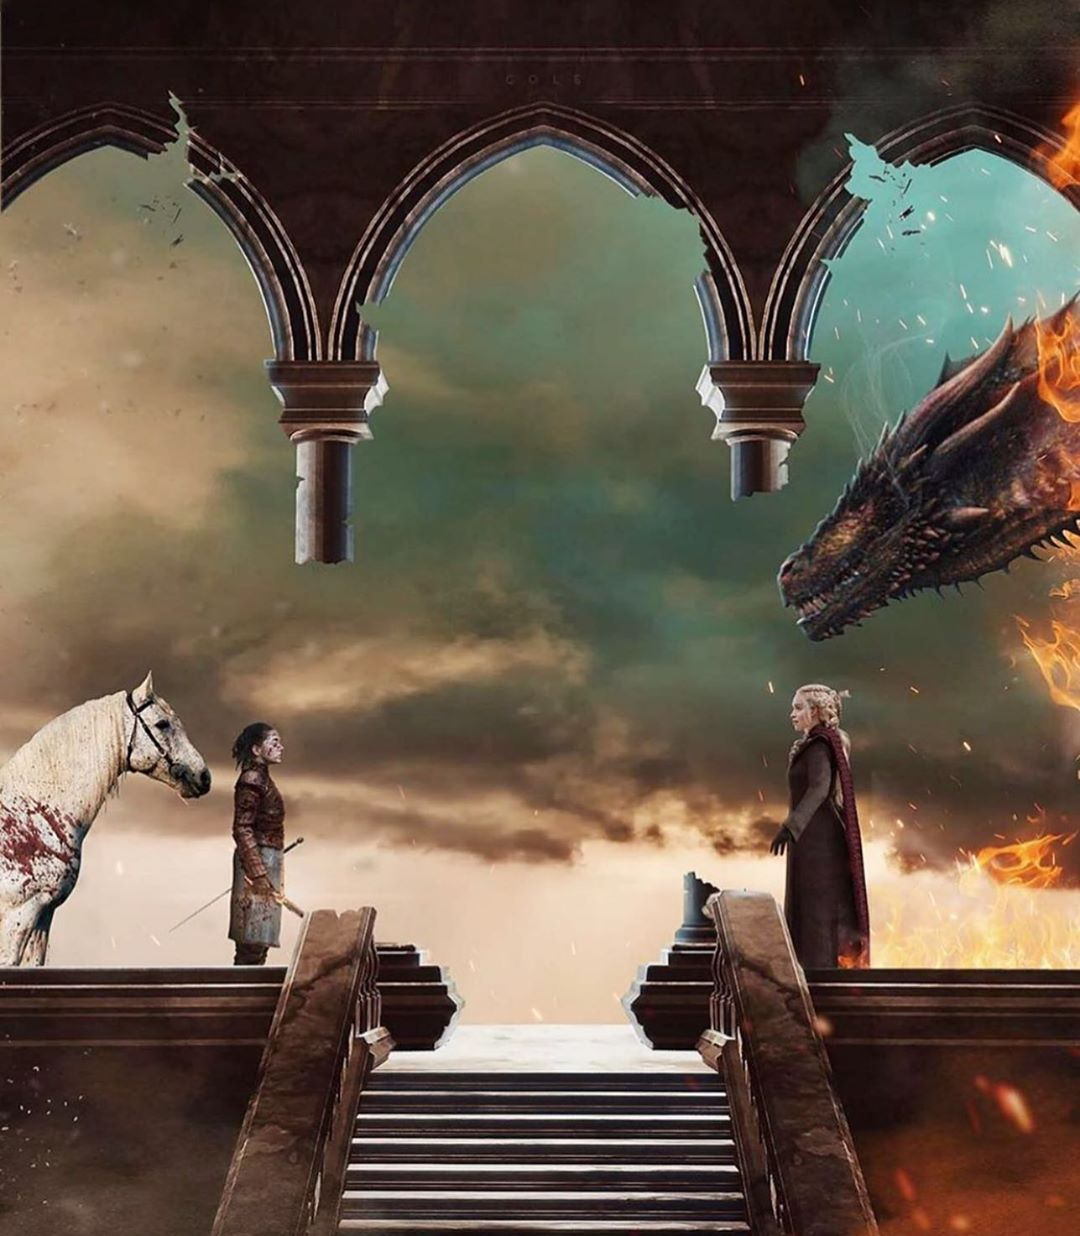 Game Of Thrones Season 8 Finale Wallpaper Dany Arya